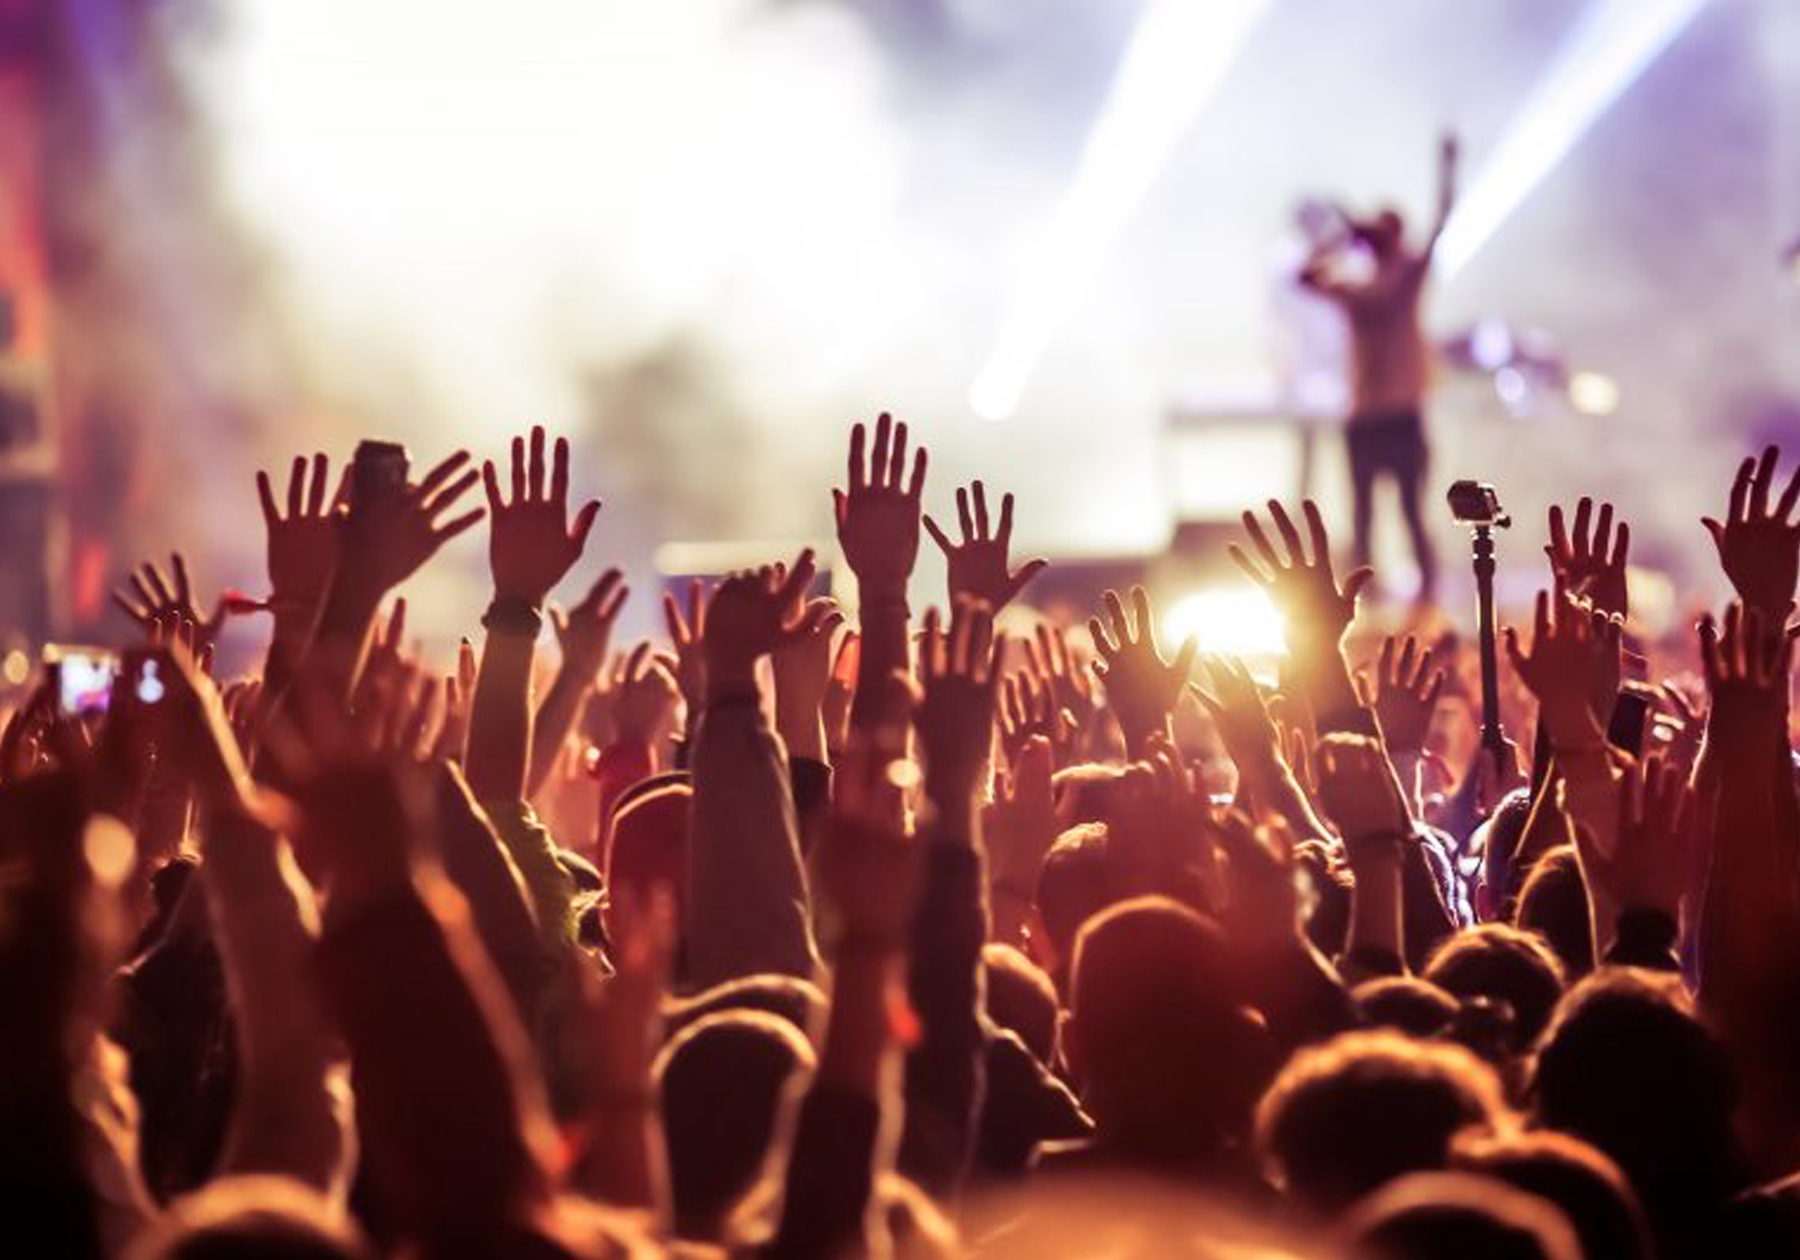 Hire PA systems, sound equipment, lighting, staging & event production for concerts, festivals & live events in Cardiff, Swansea, Newport, Carmarthenshire, Pembrokeshire, South & West Wales